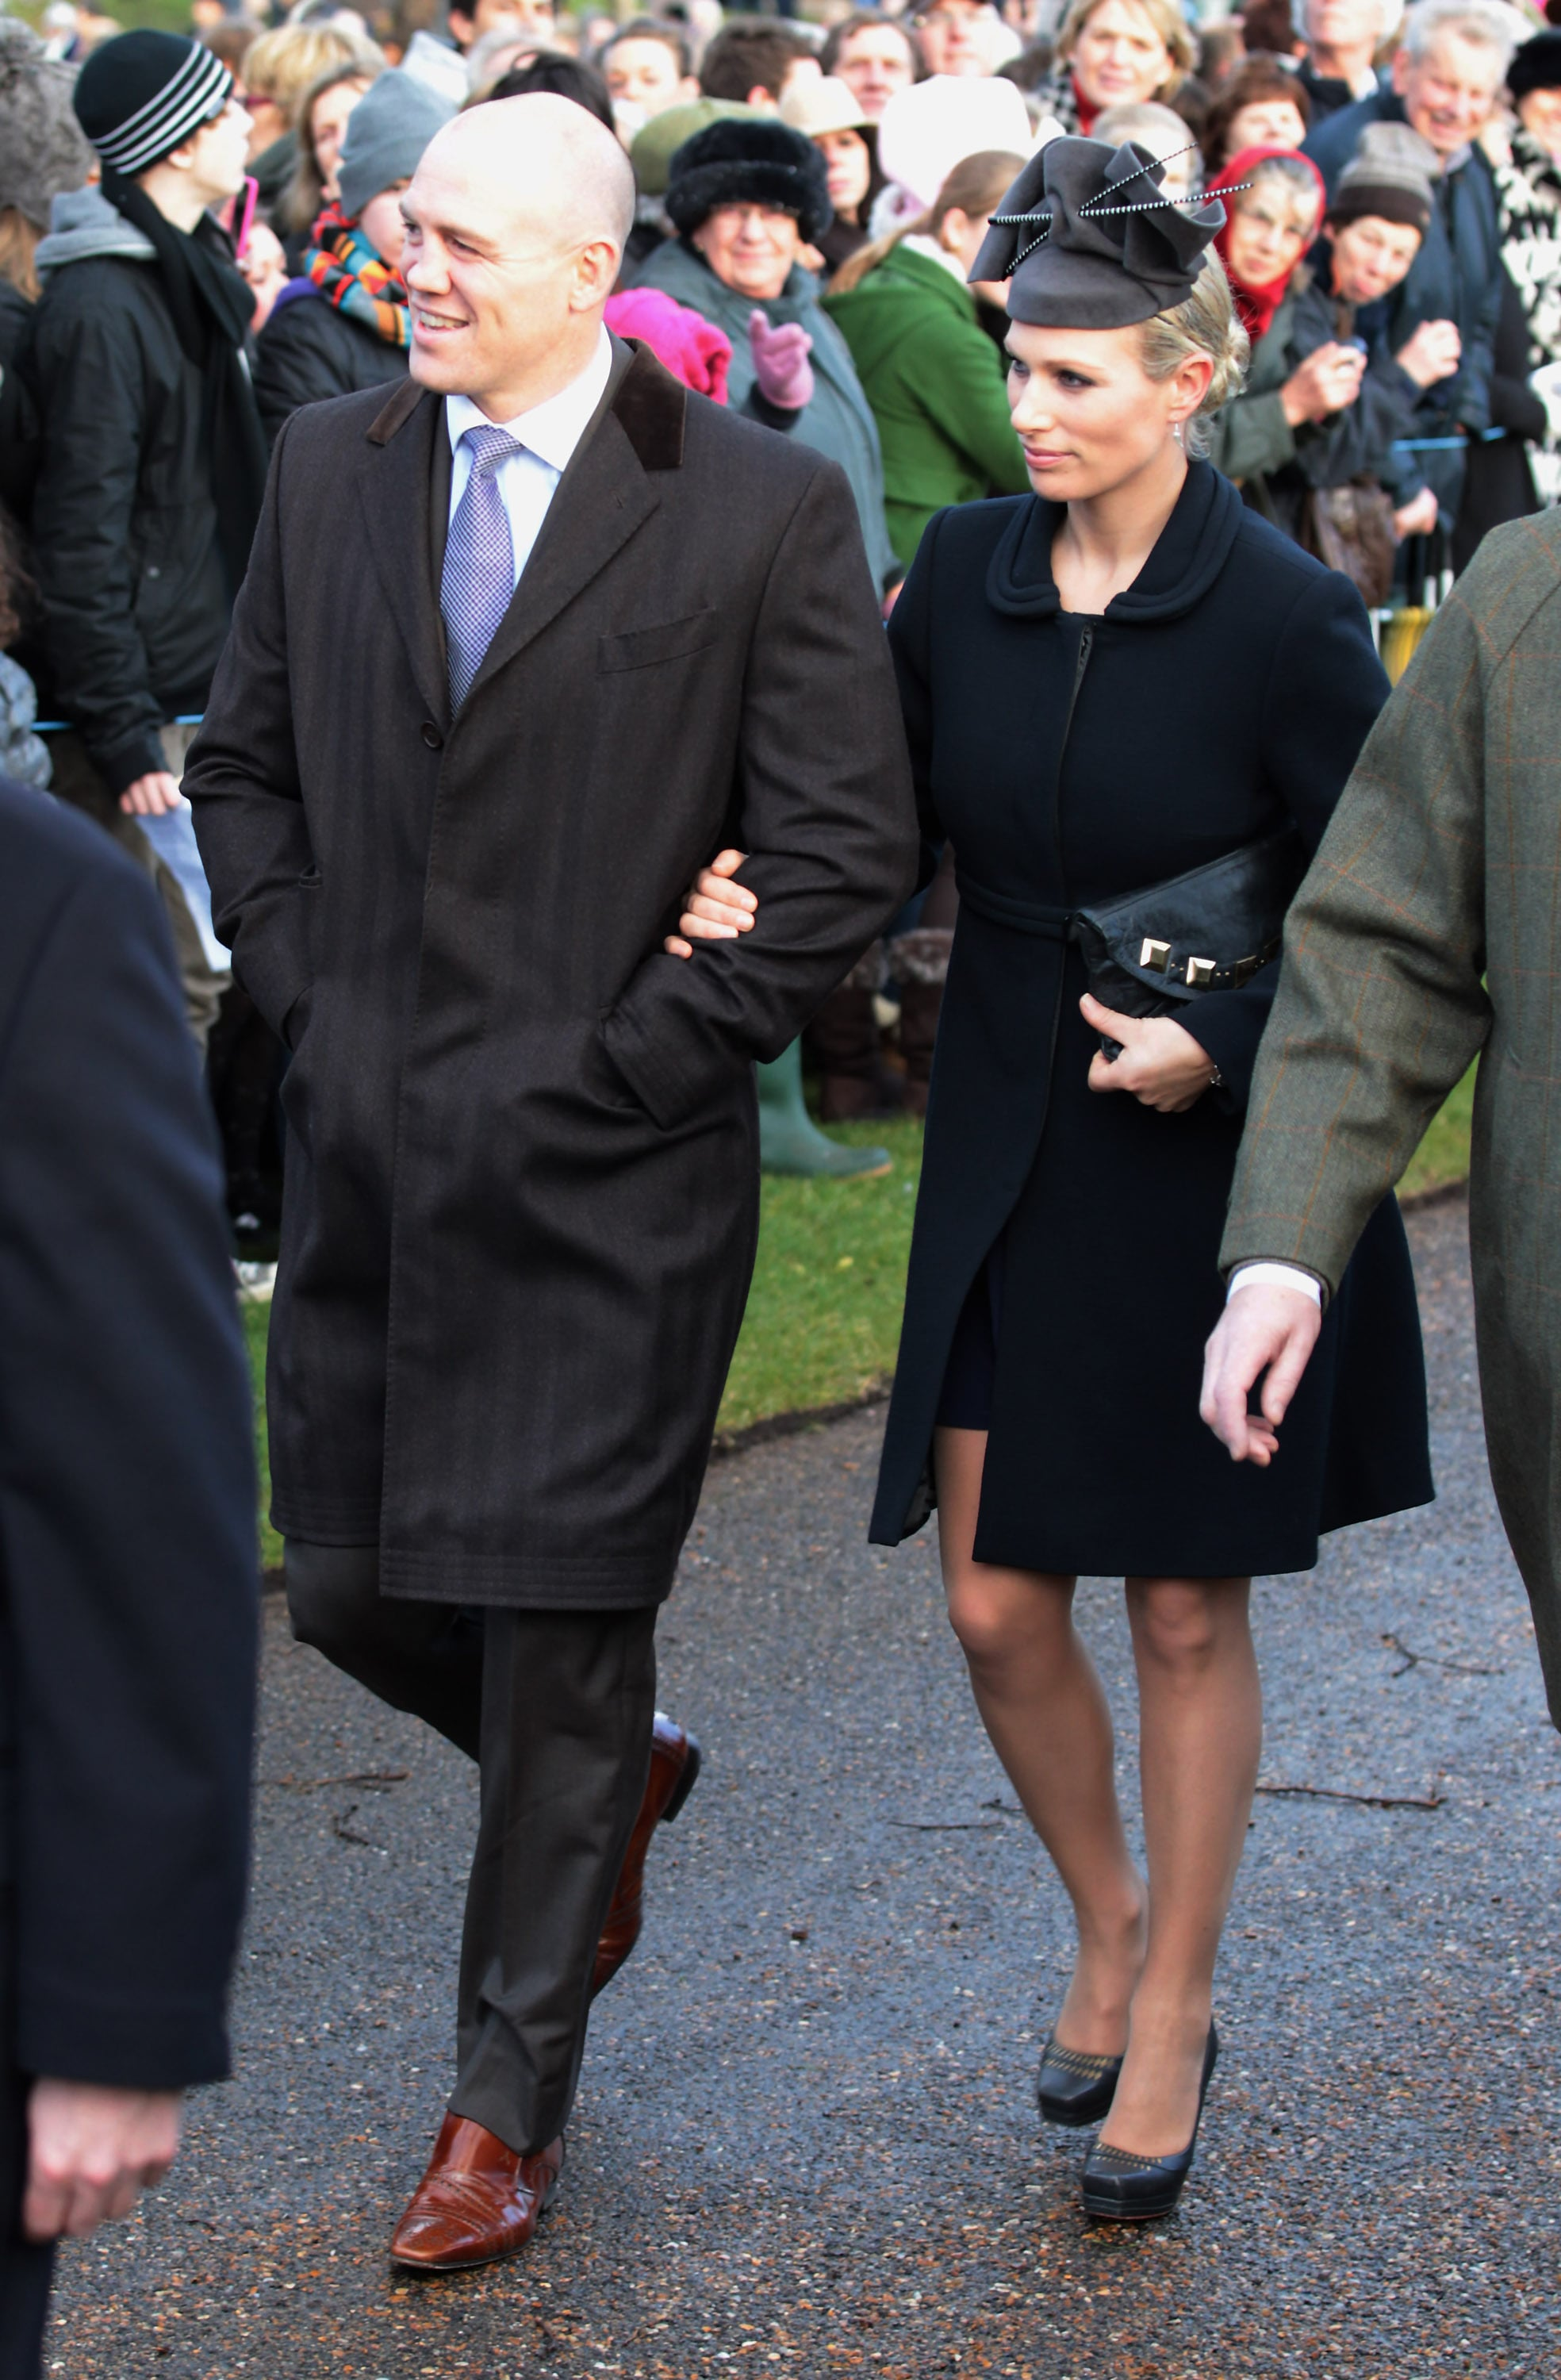 Zara and Mike went to the traditional Christmas Day services in 2011 with the royal family.